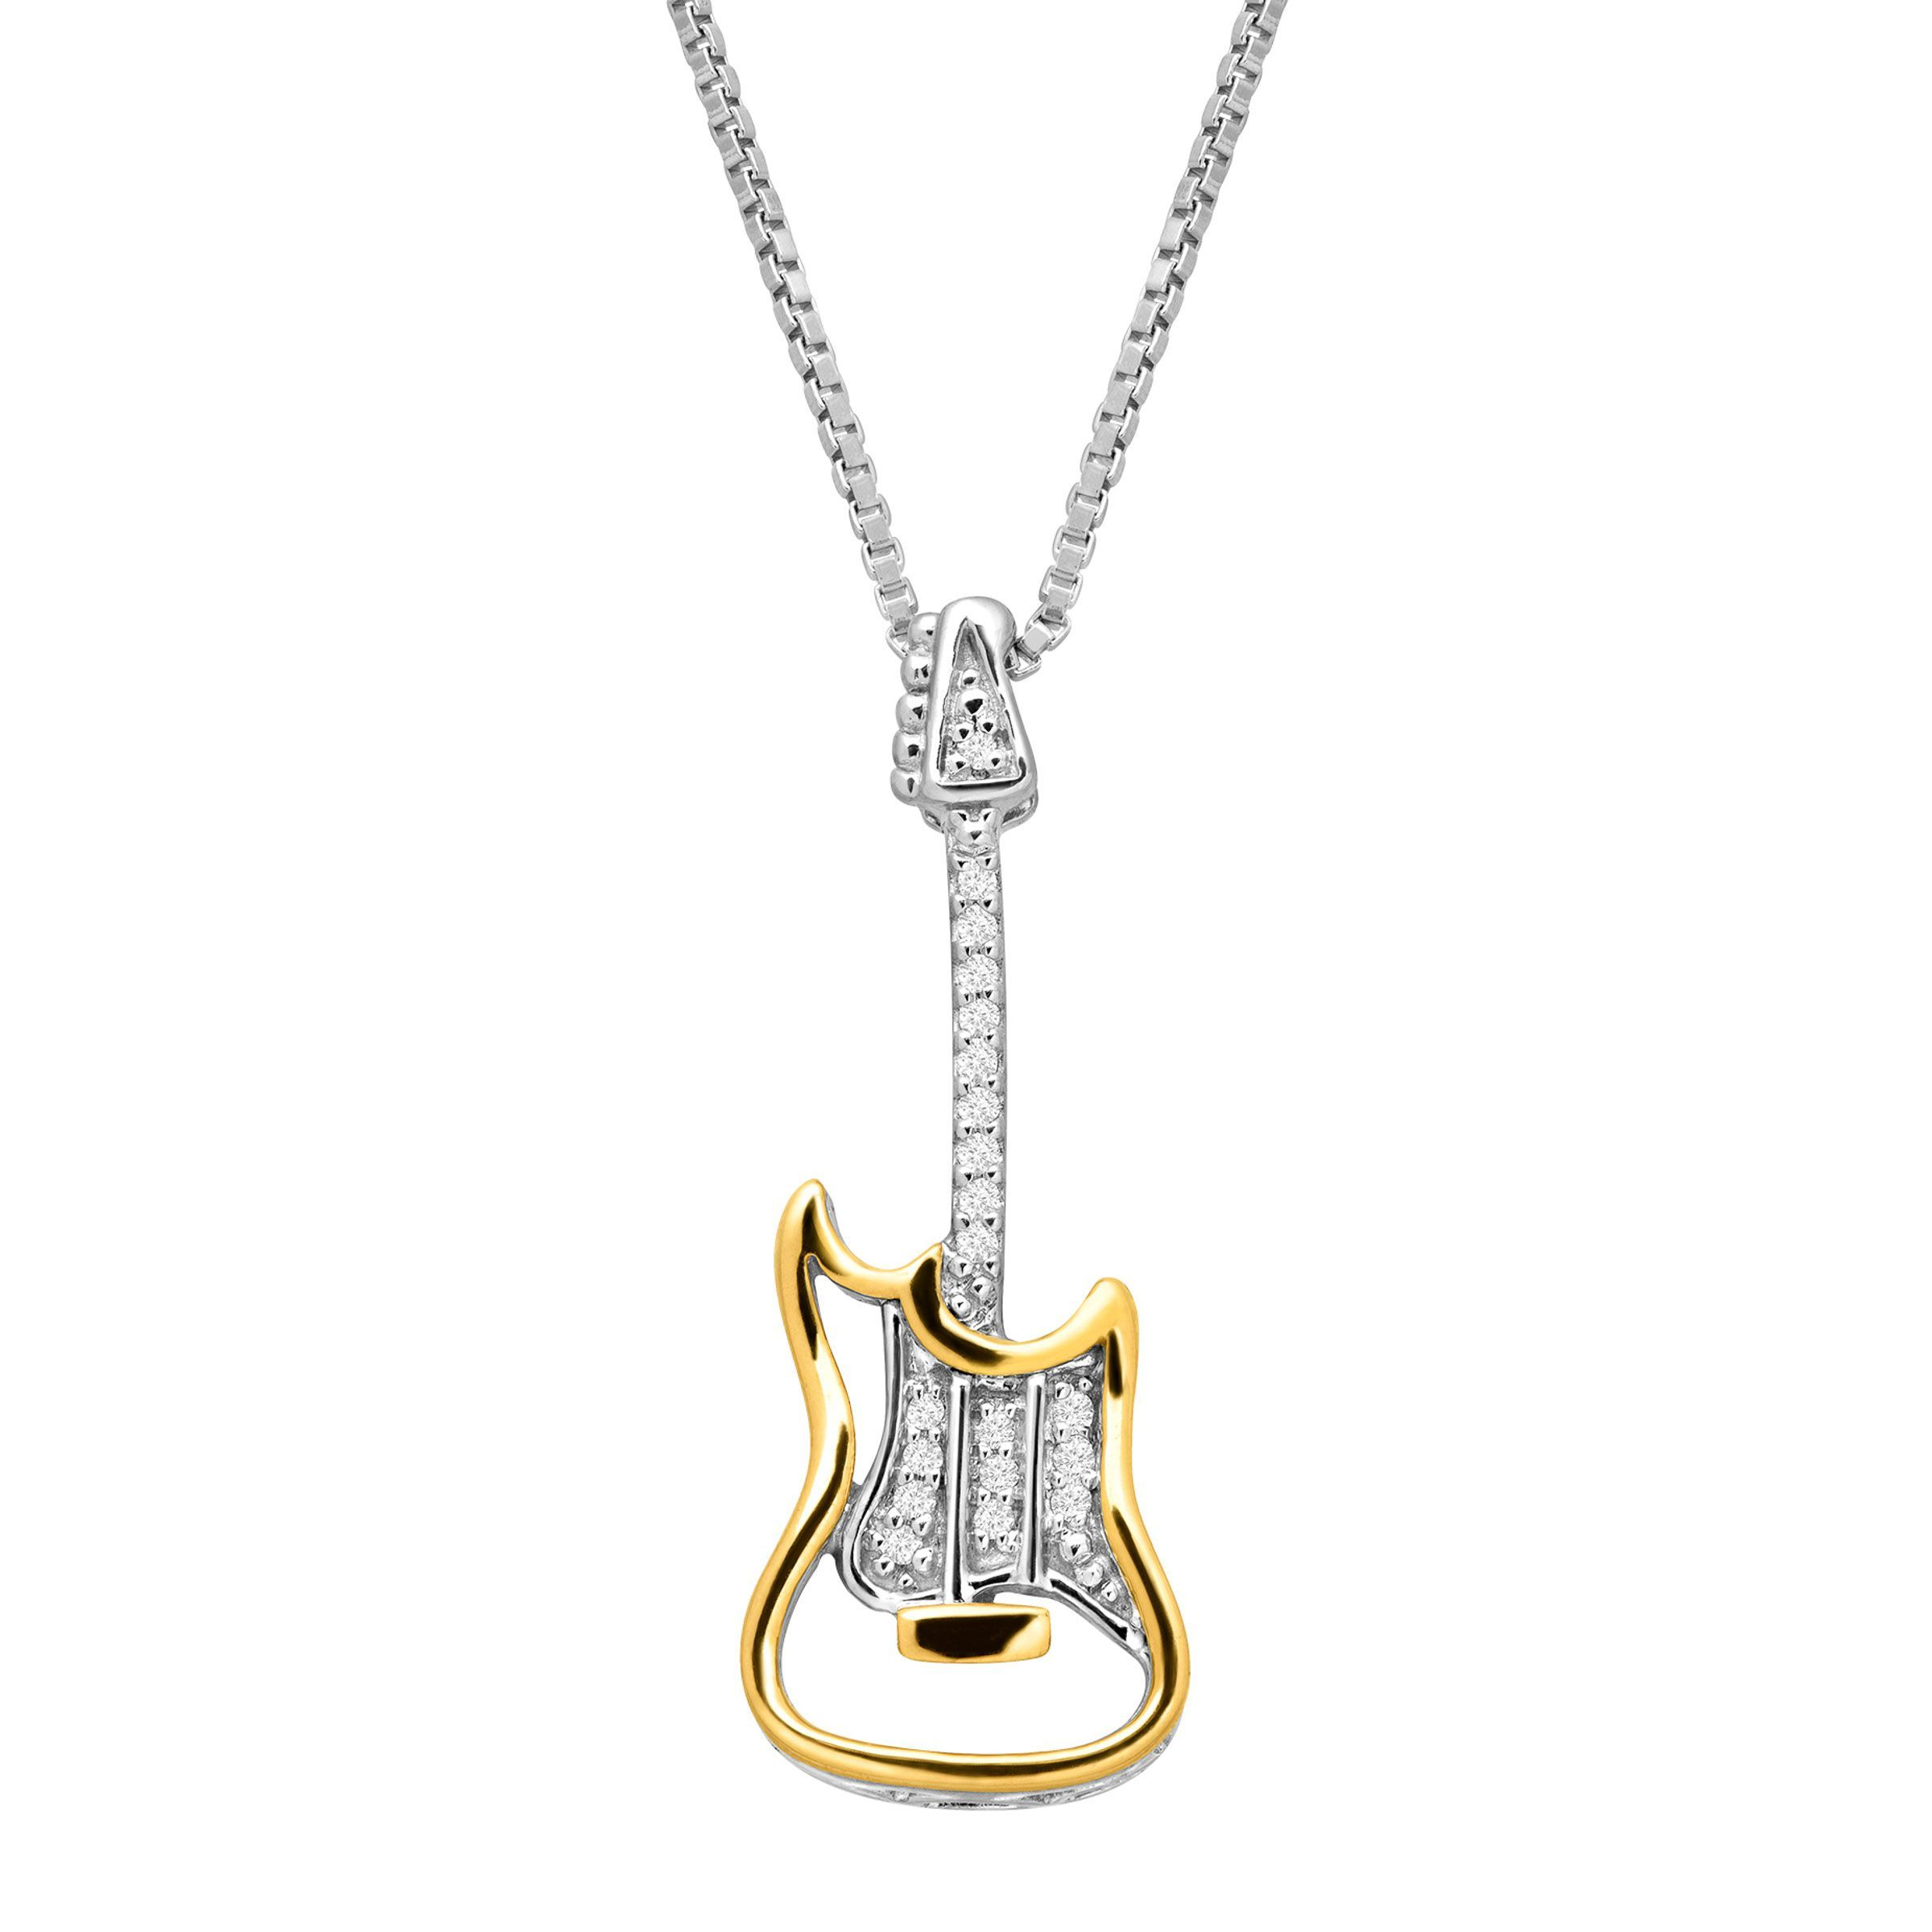 steel female necklace chain pendant stainless product electric male jewelry crystal shaped mens wholesale inlaid o and guitar necklaces